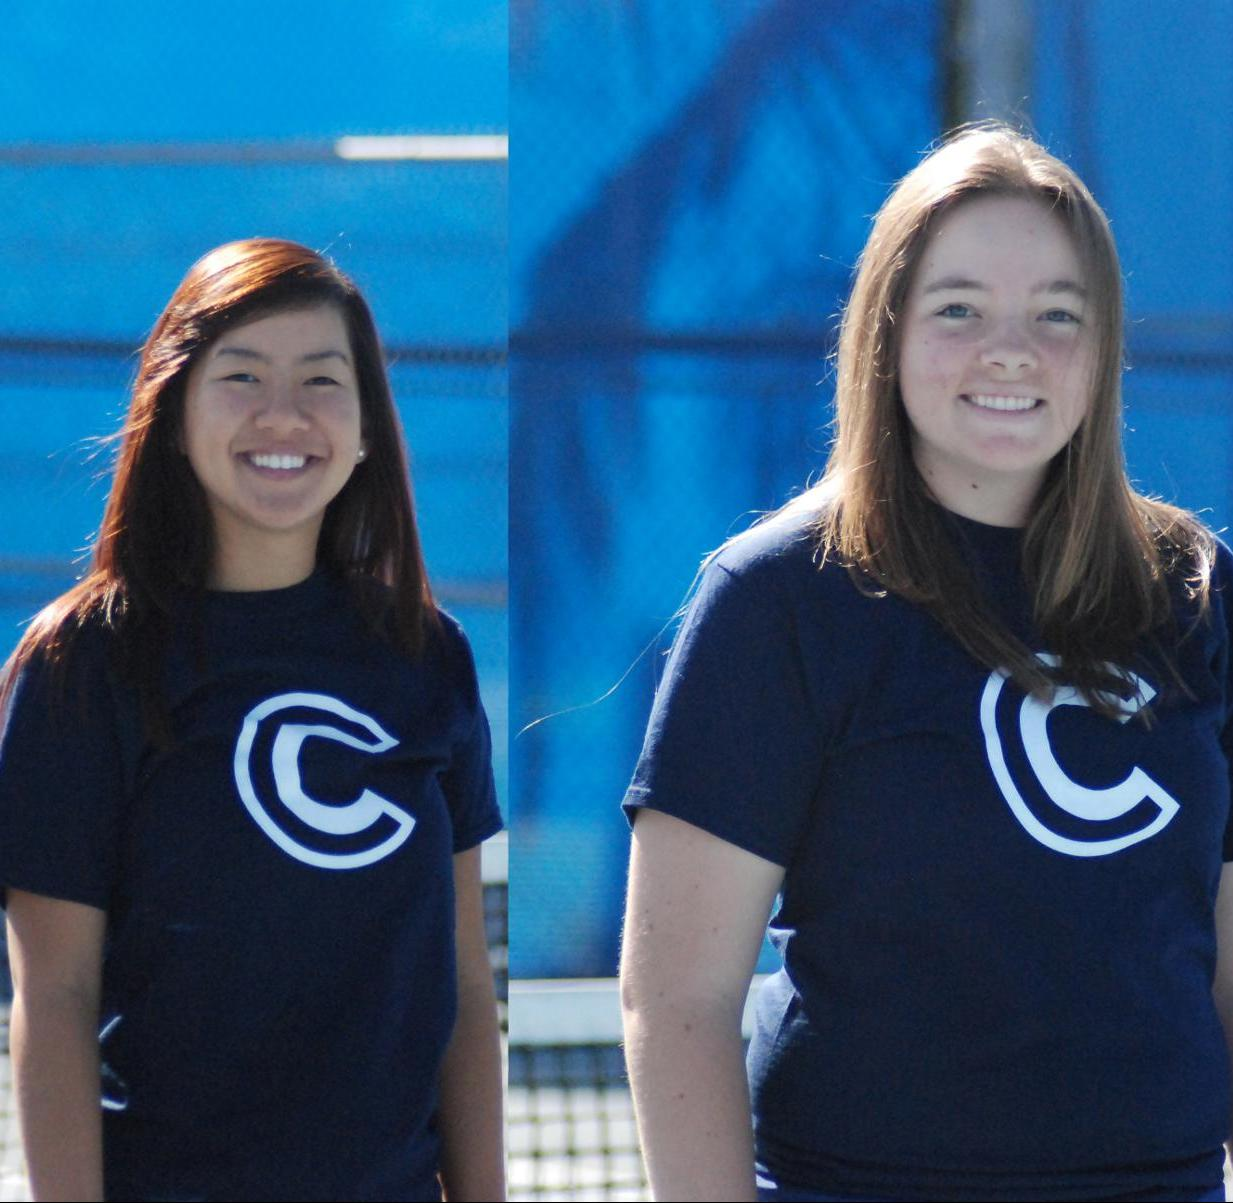 Dao & Laubie Named Co-Chargers of the Week (Apr. 18-24)